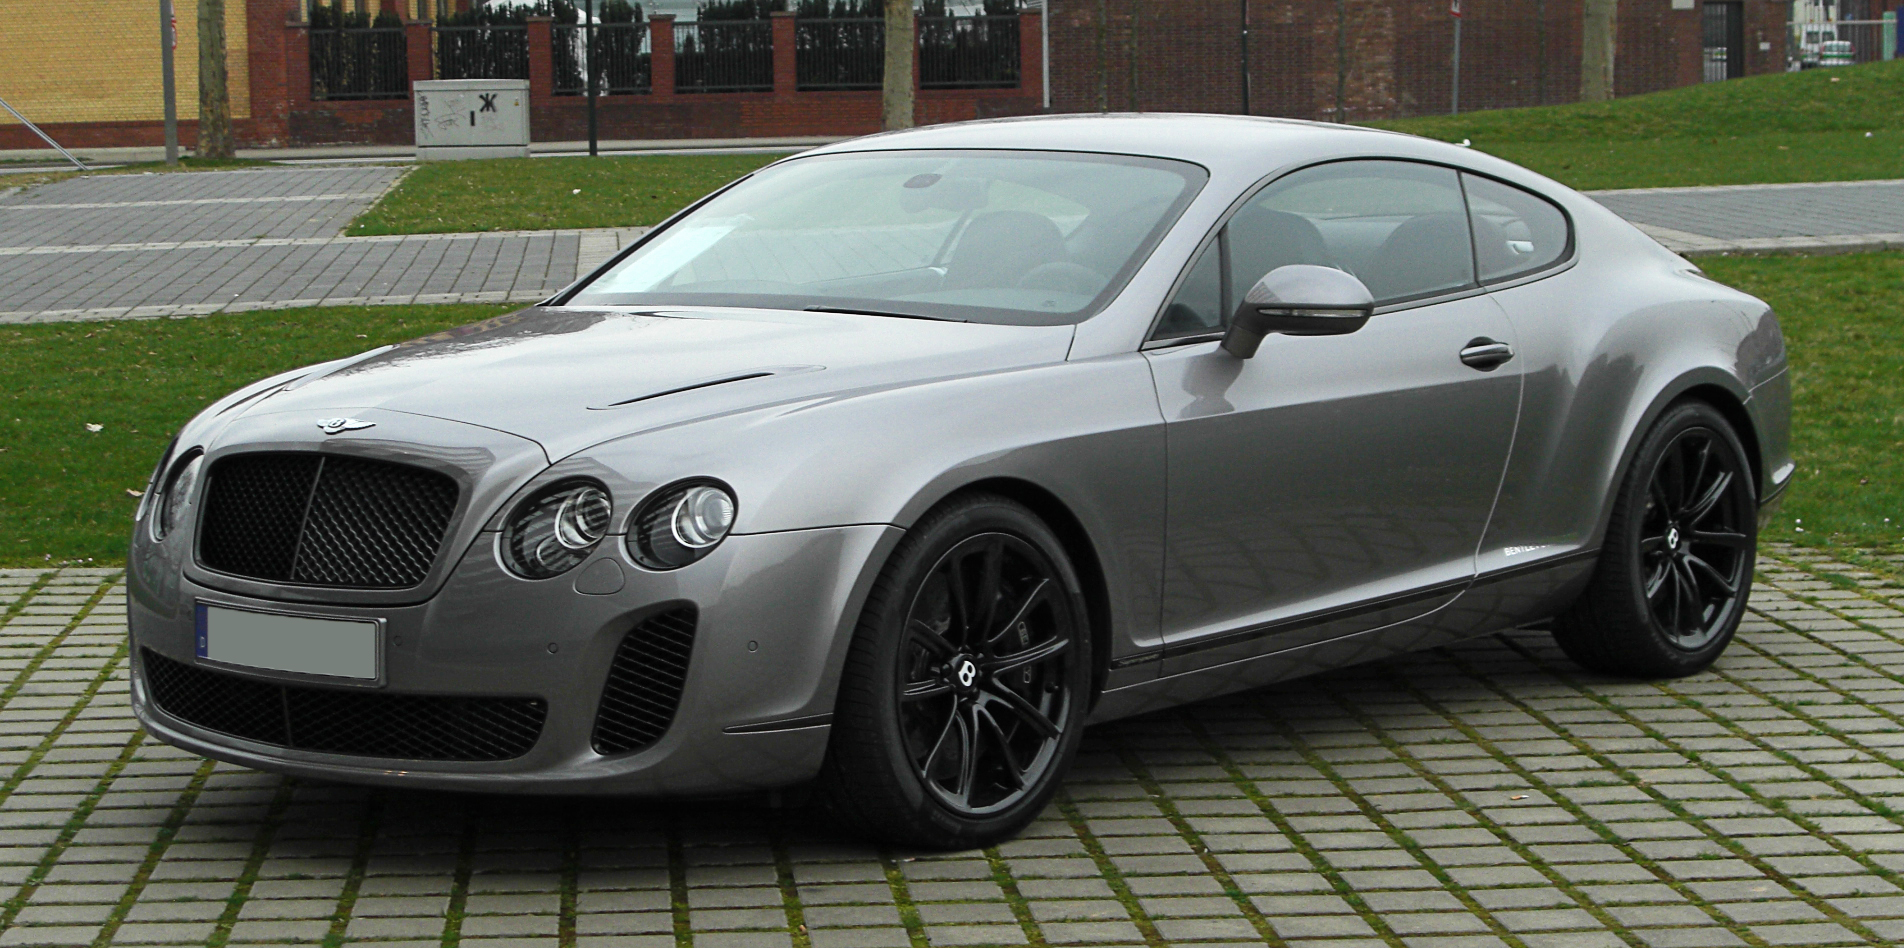 File:Bentley Continental GT Supersports